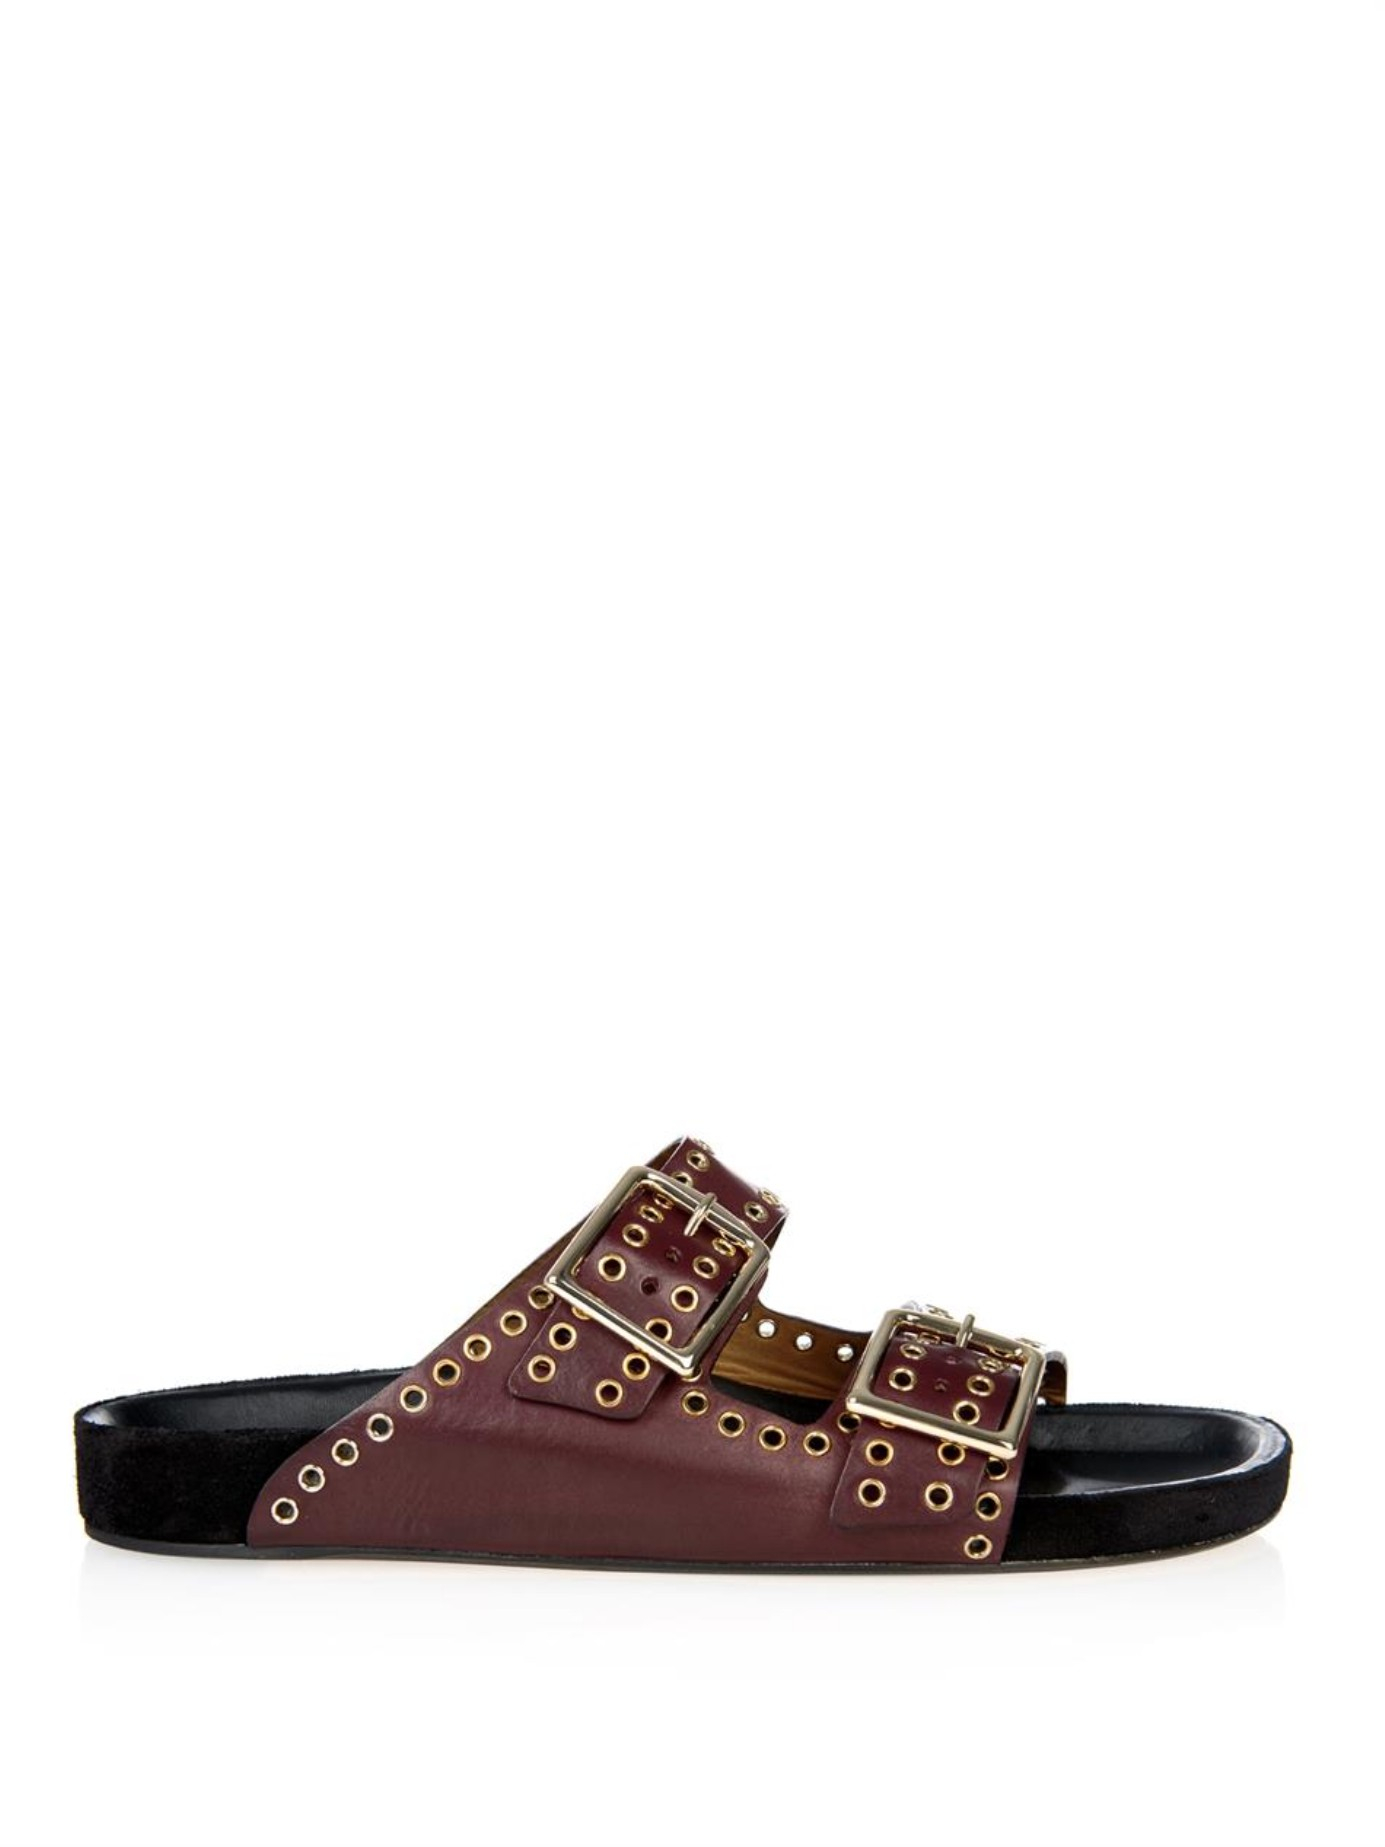 Isabel Marant Lenny Buckle Leather Sandals In Purple Lyst